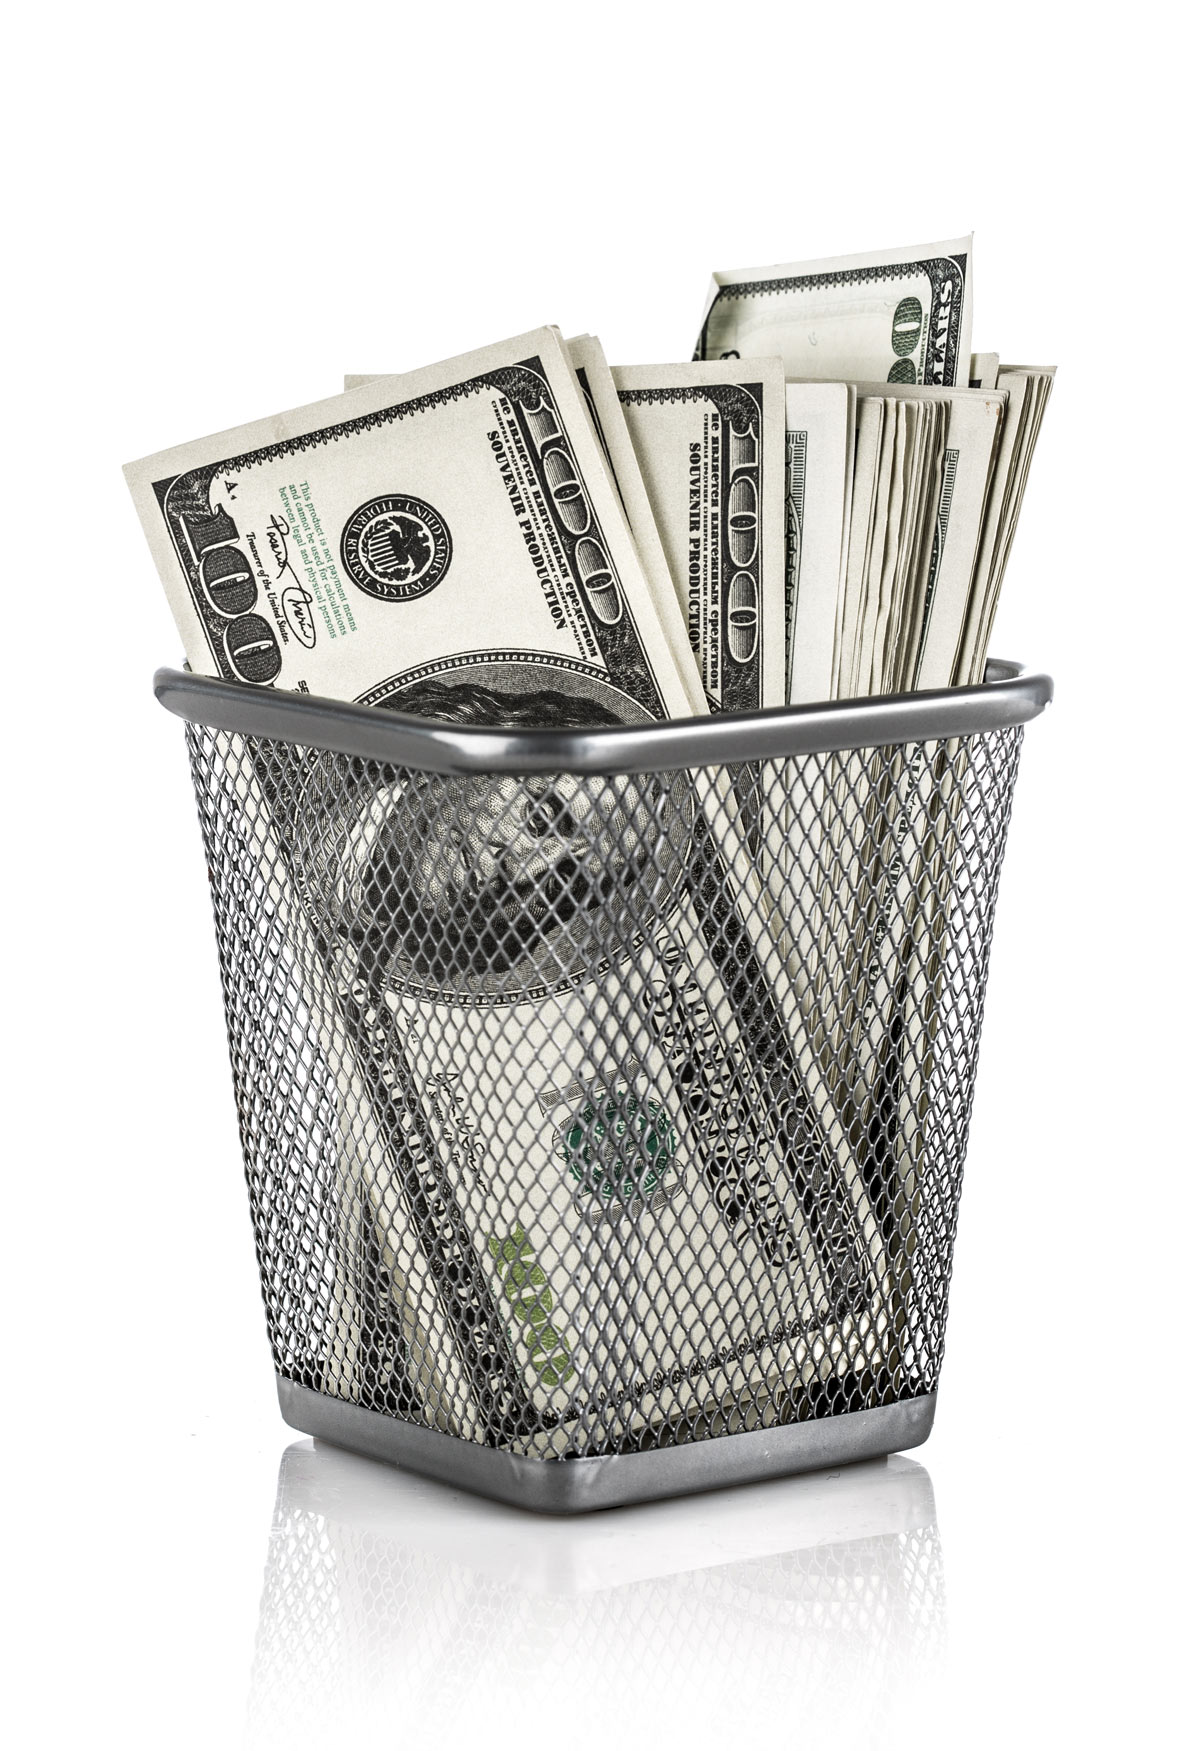 Small wire basket with a stack of $100 bills.